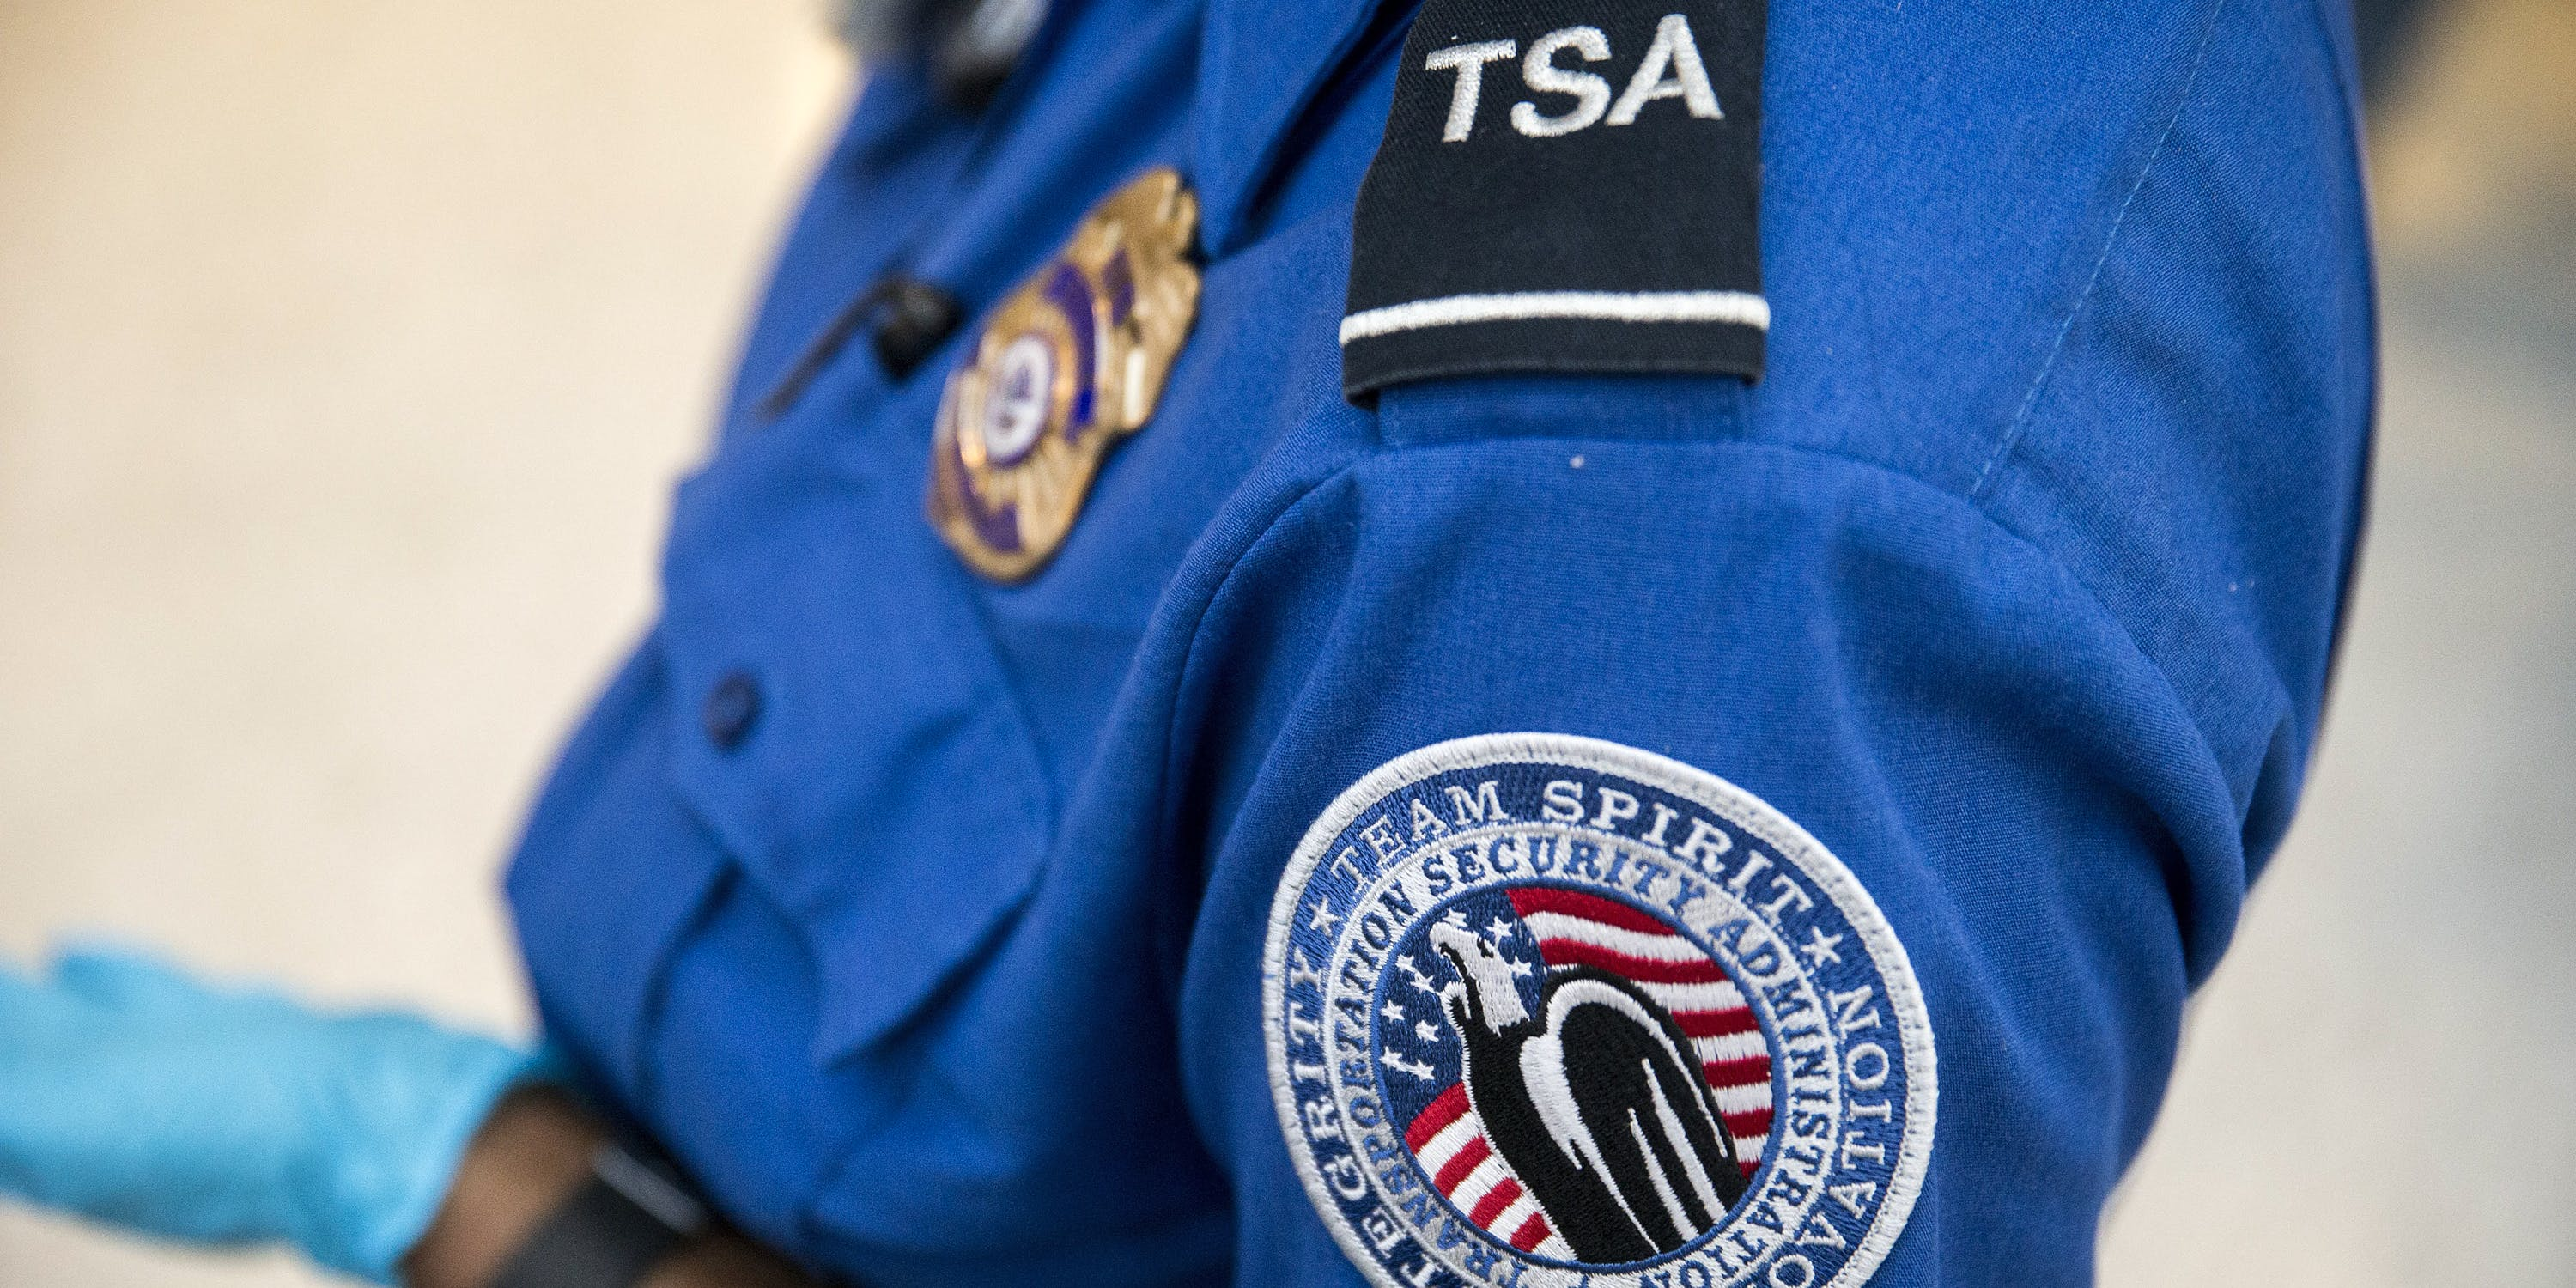 Dispensary Owner Flagged By TSA Airport Security Because He Works In Cannabis